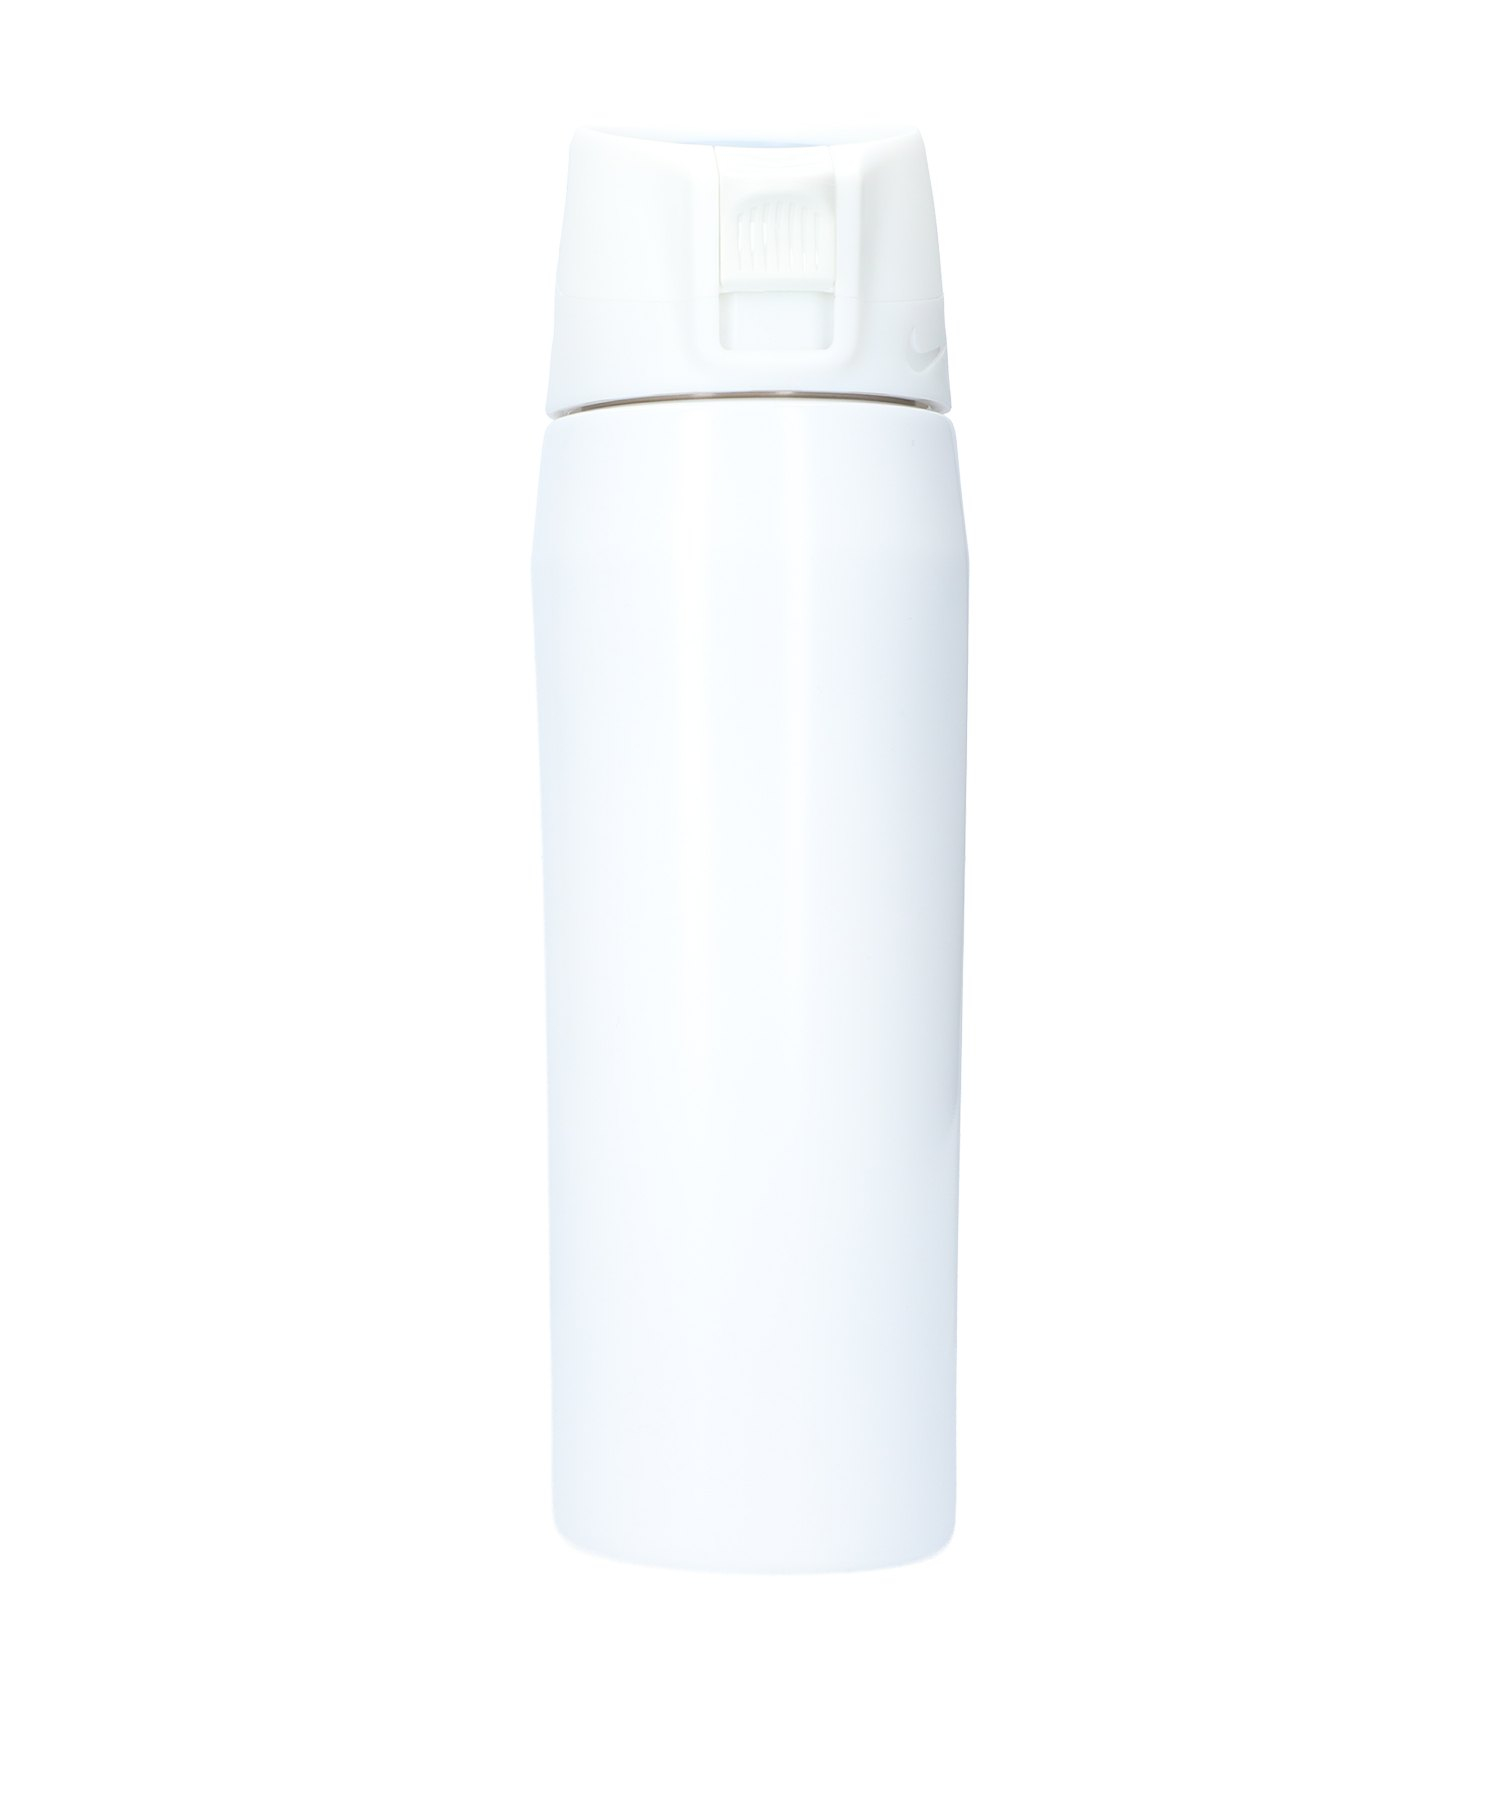 Nike Hypercharge Straw Bottle 24 OZ Weiss F155 - weiss